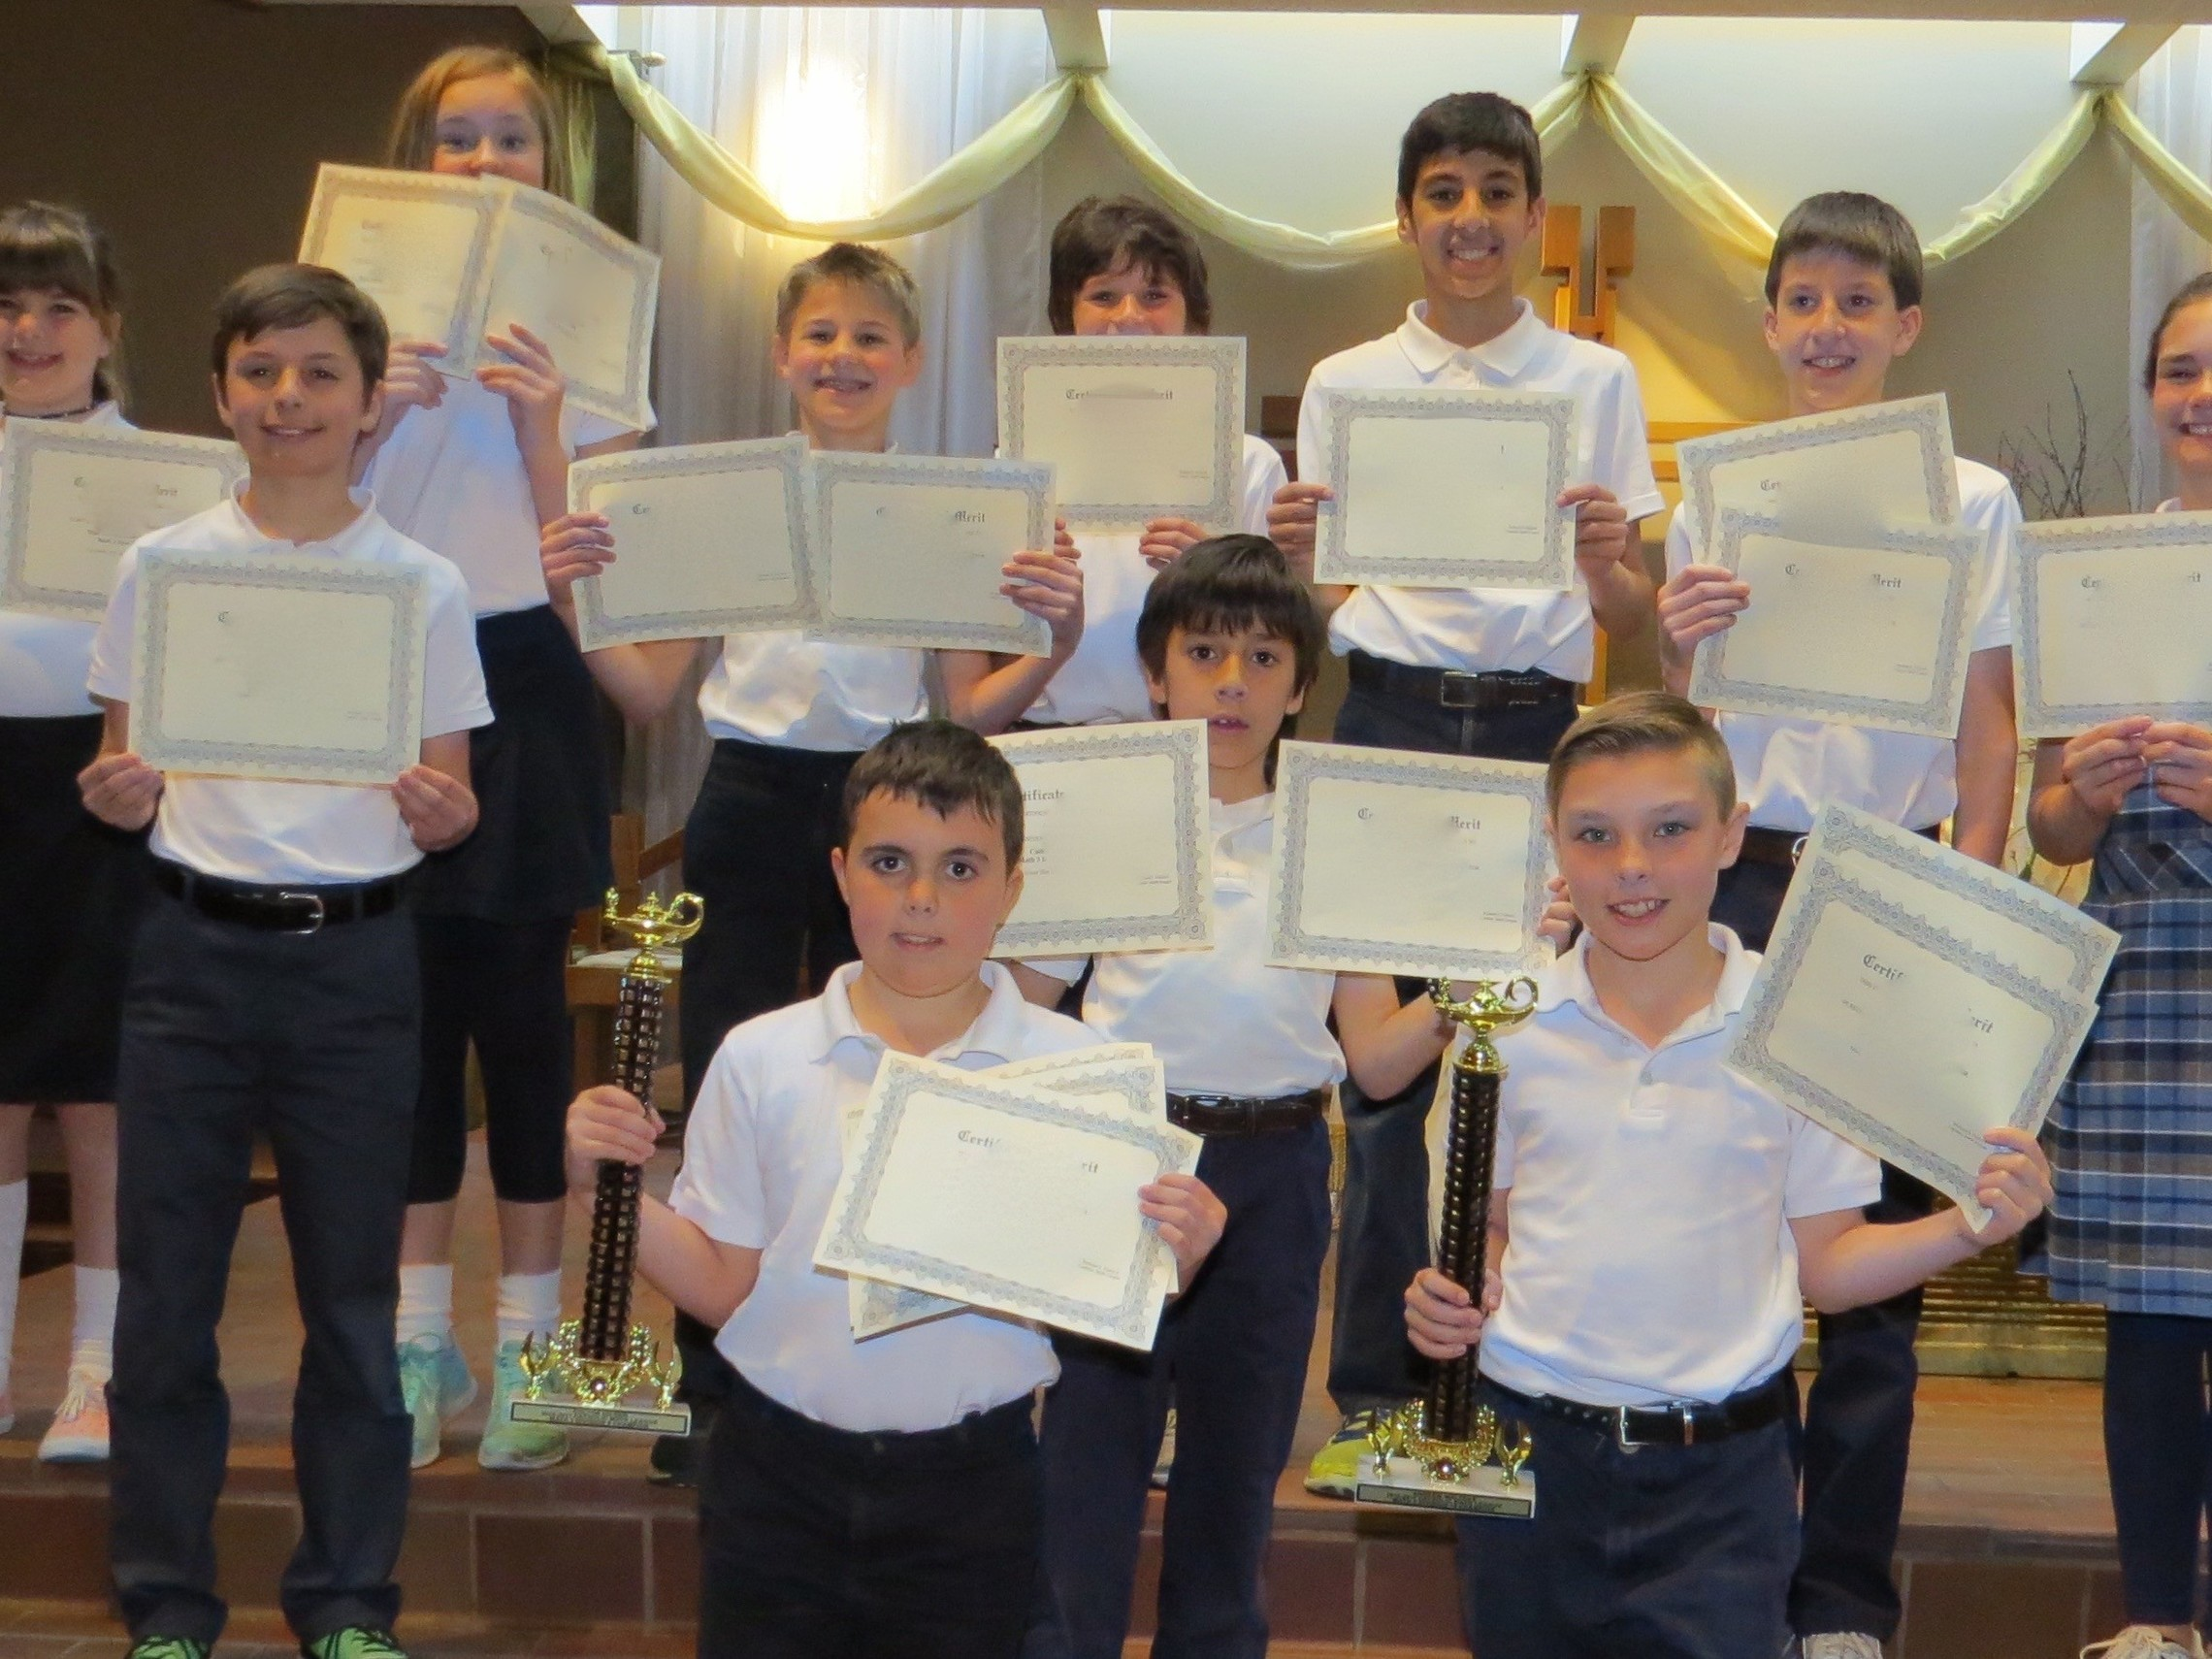 CML with certificates